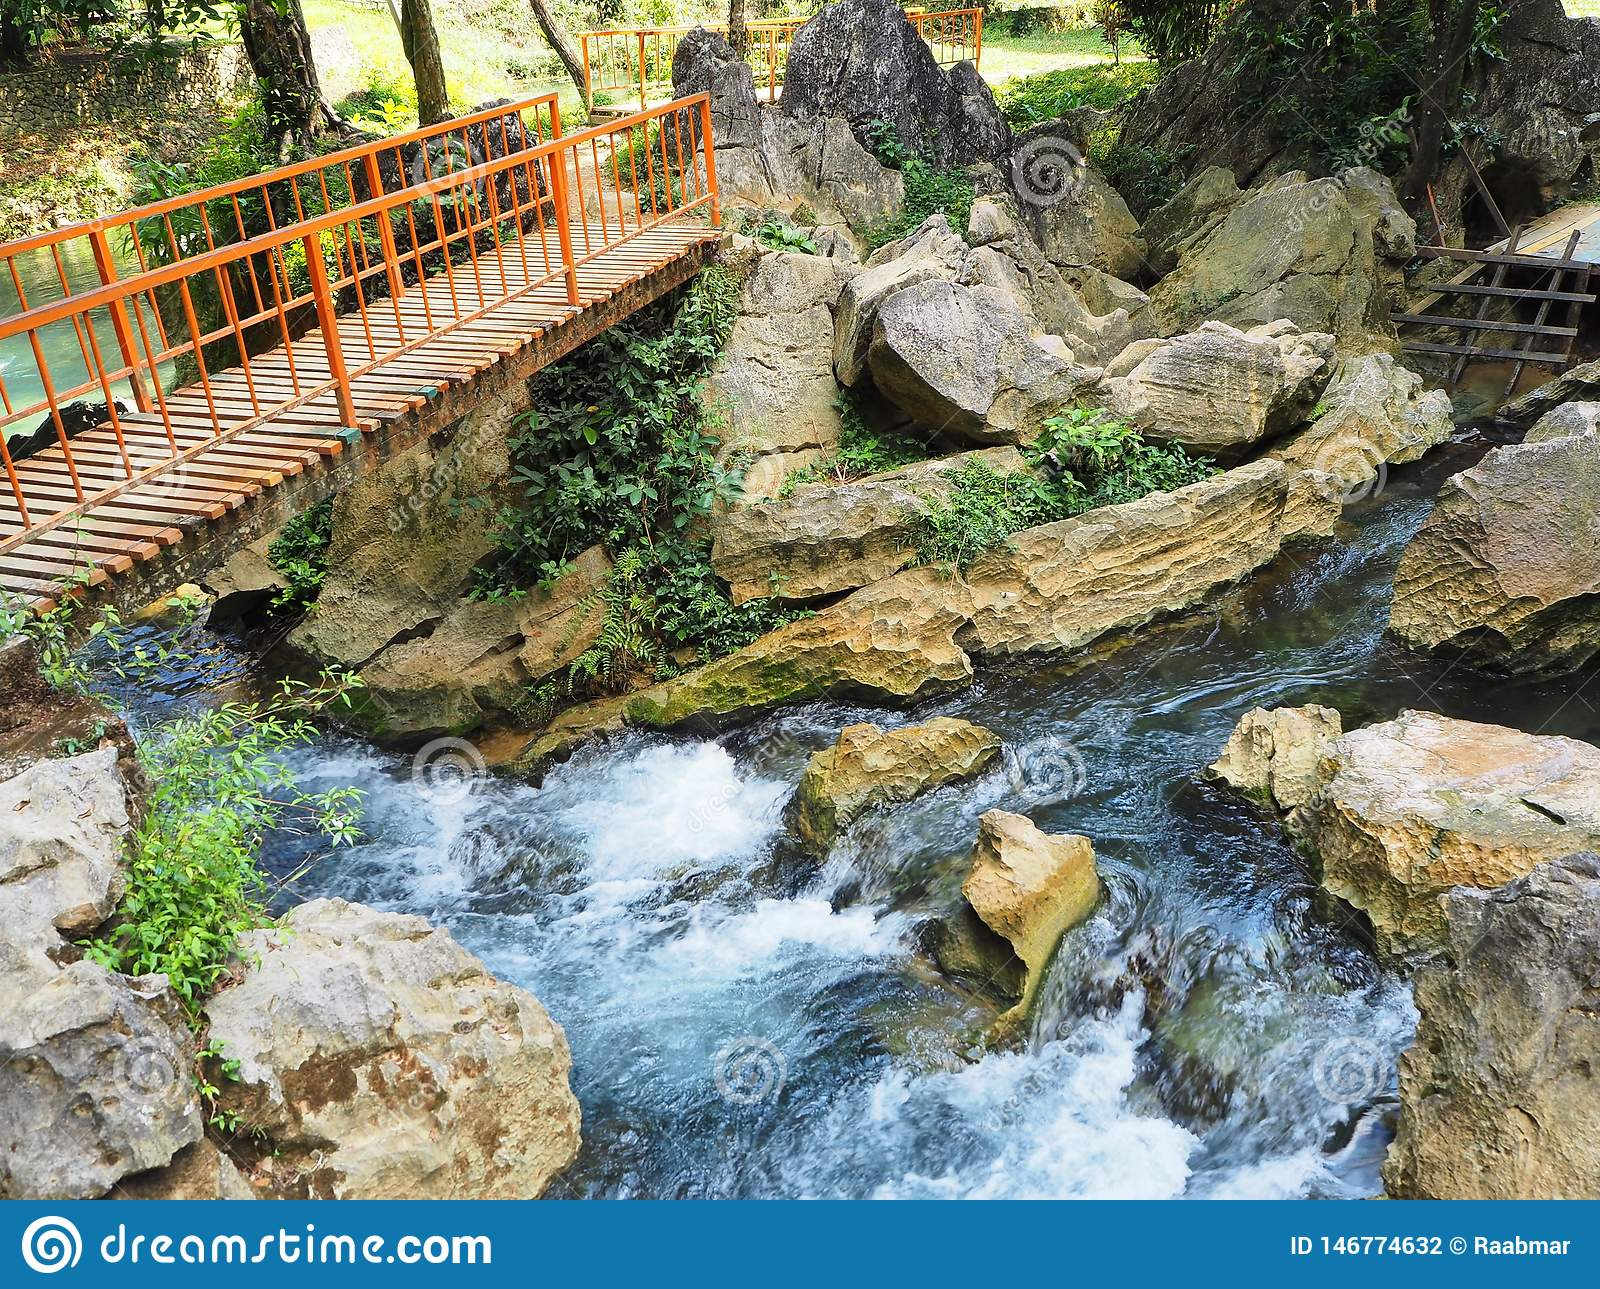 Orange bridge to cross a beautiful and colorful little river in Vang Vieng, Laos